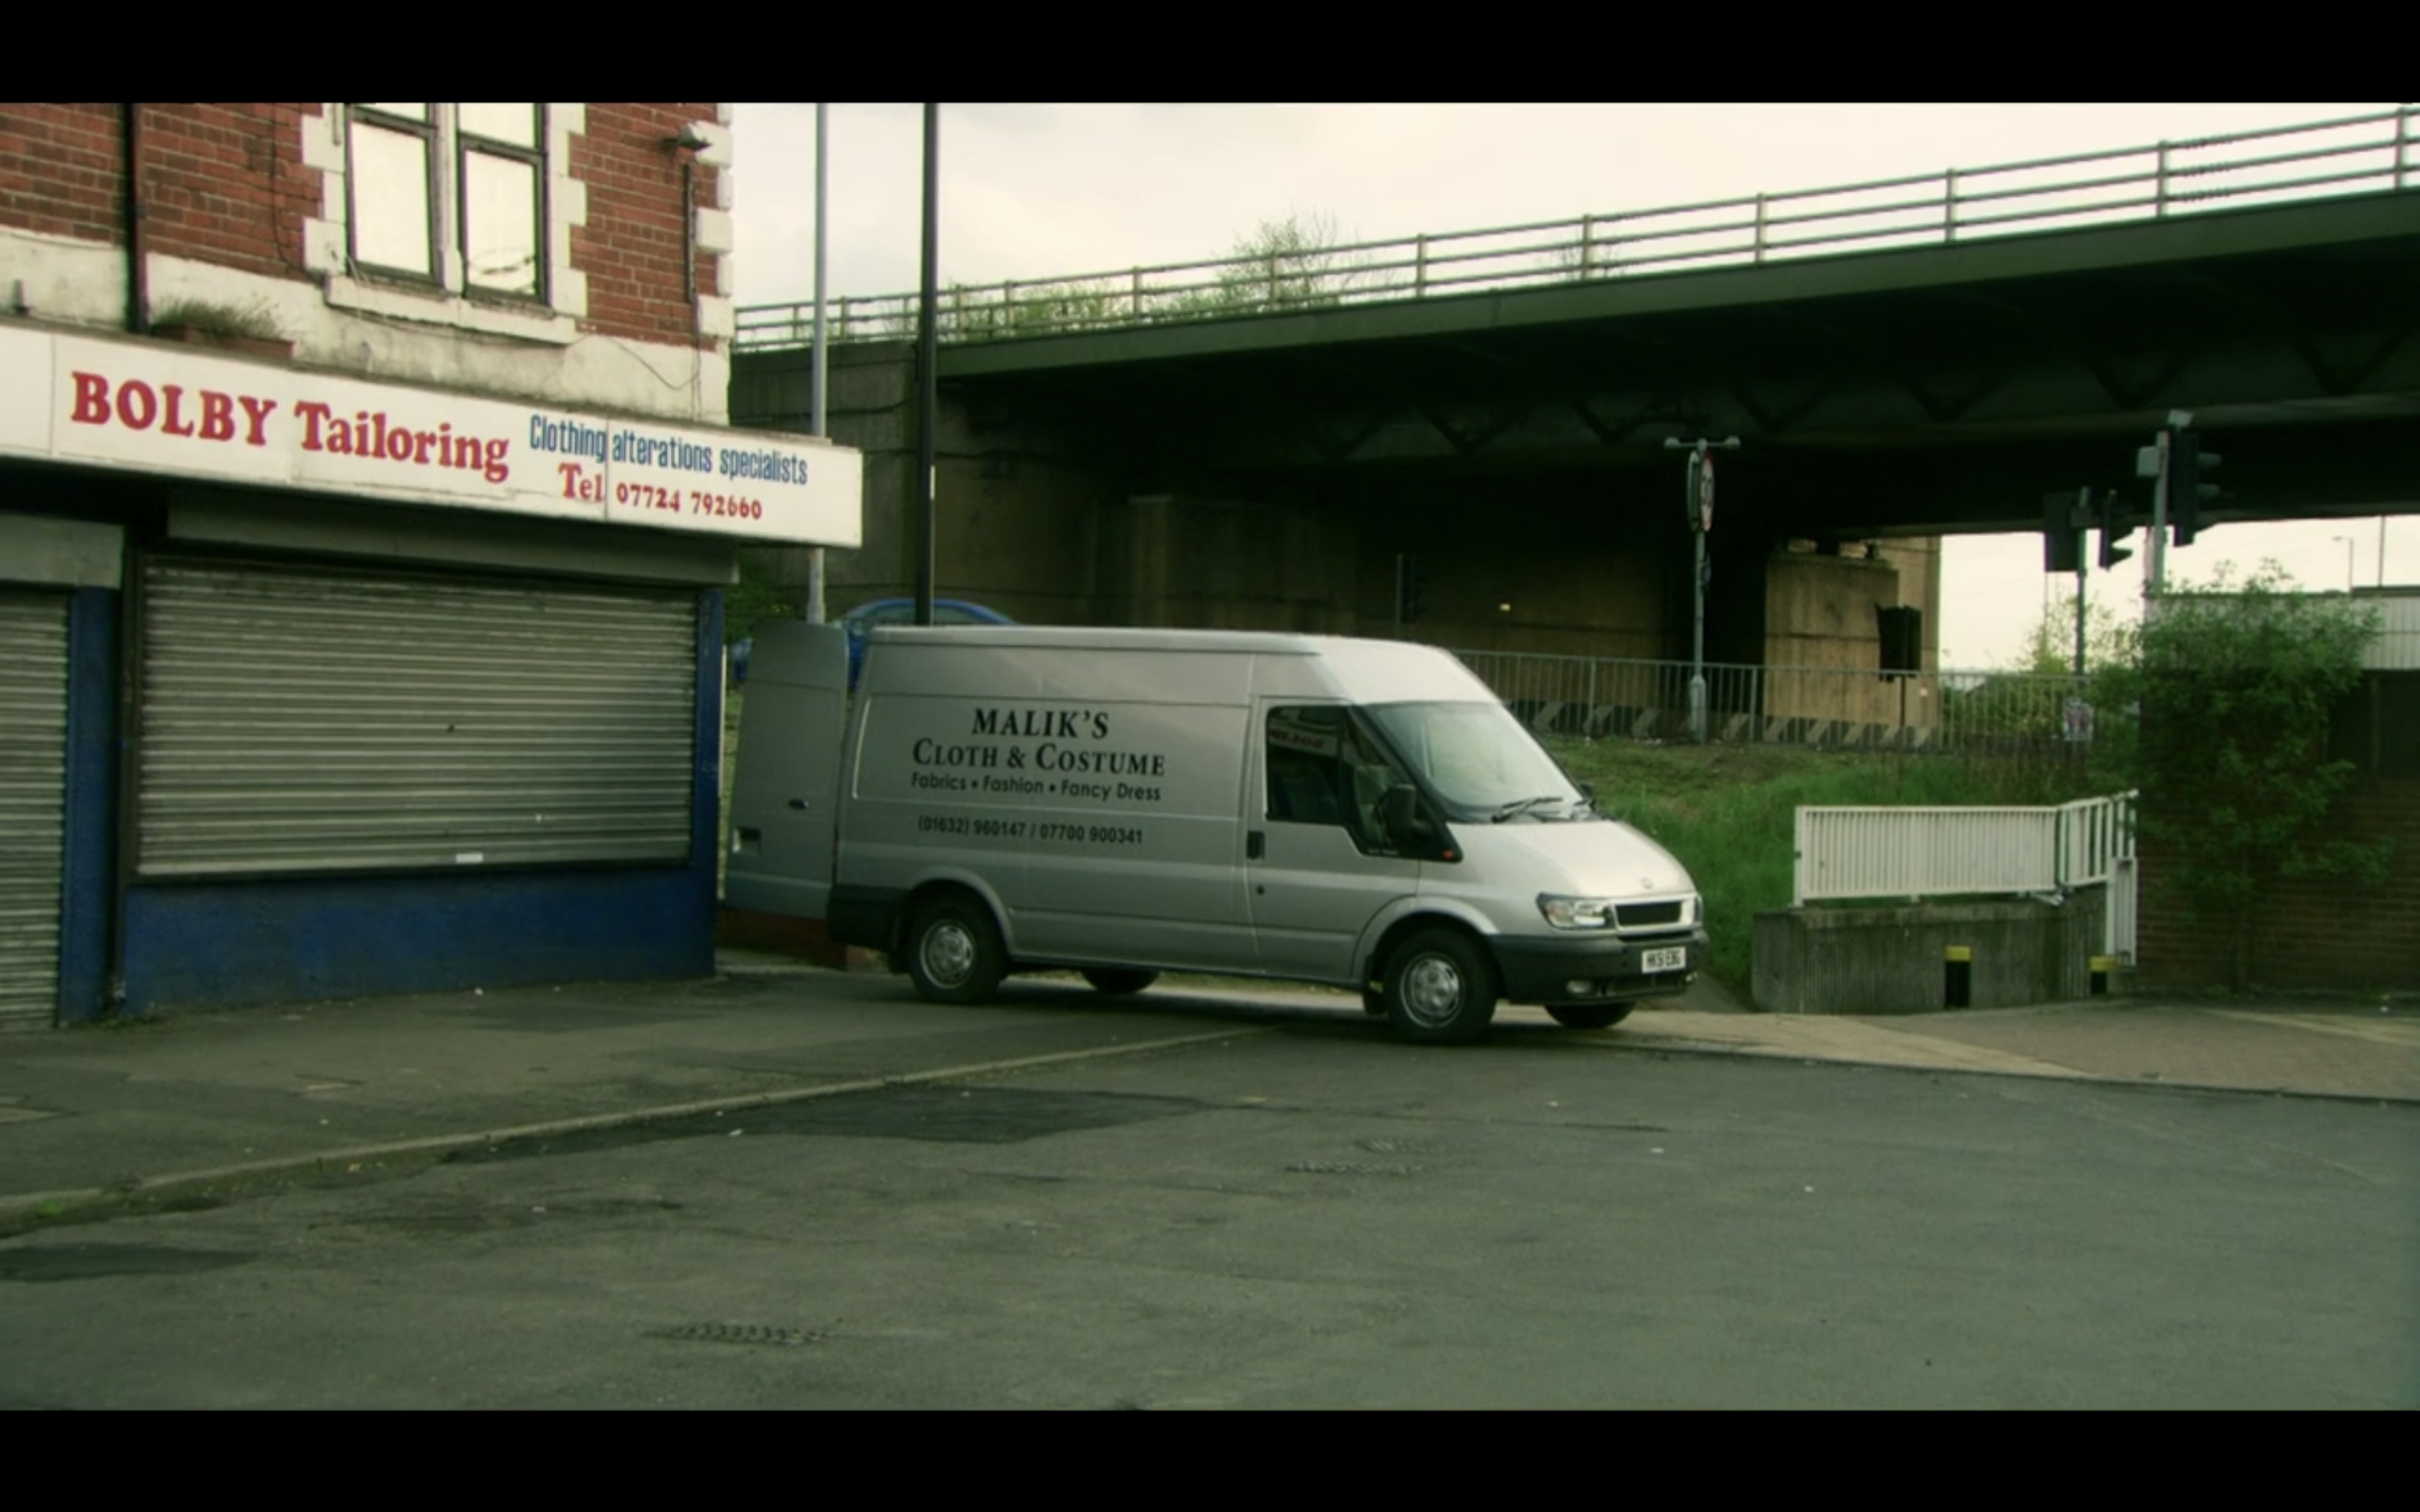 The Tinsley Headquarters filming location for Four Lions